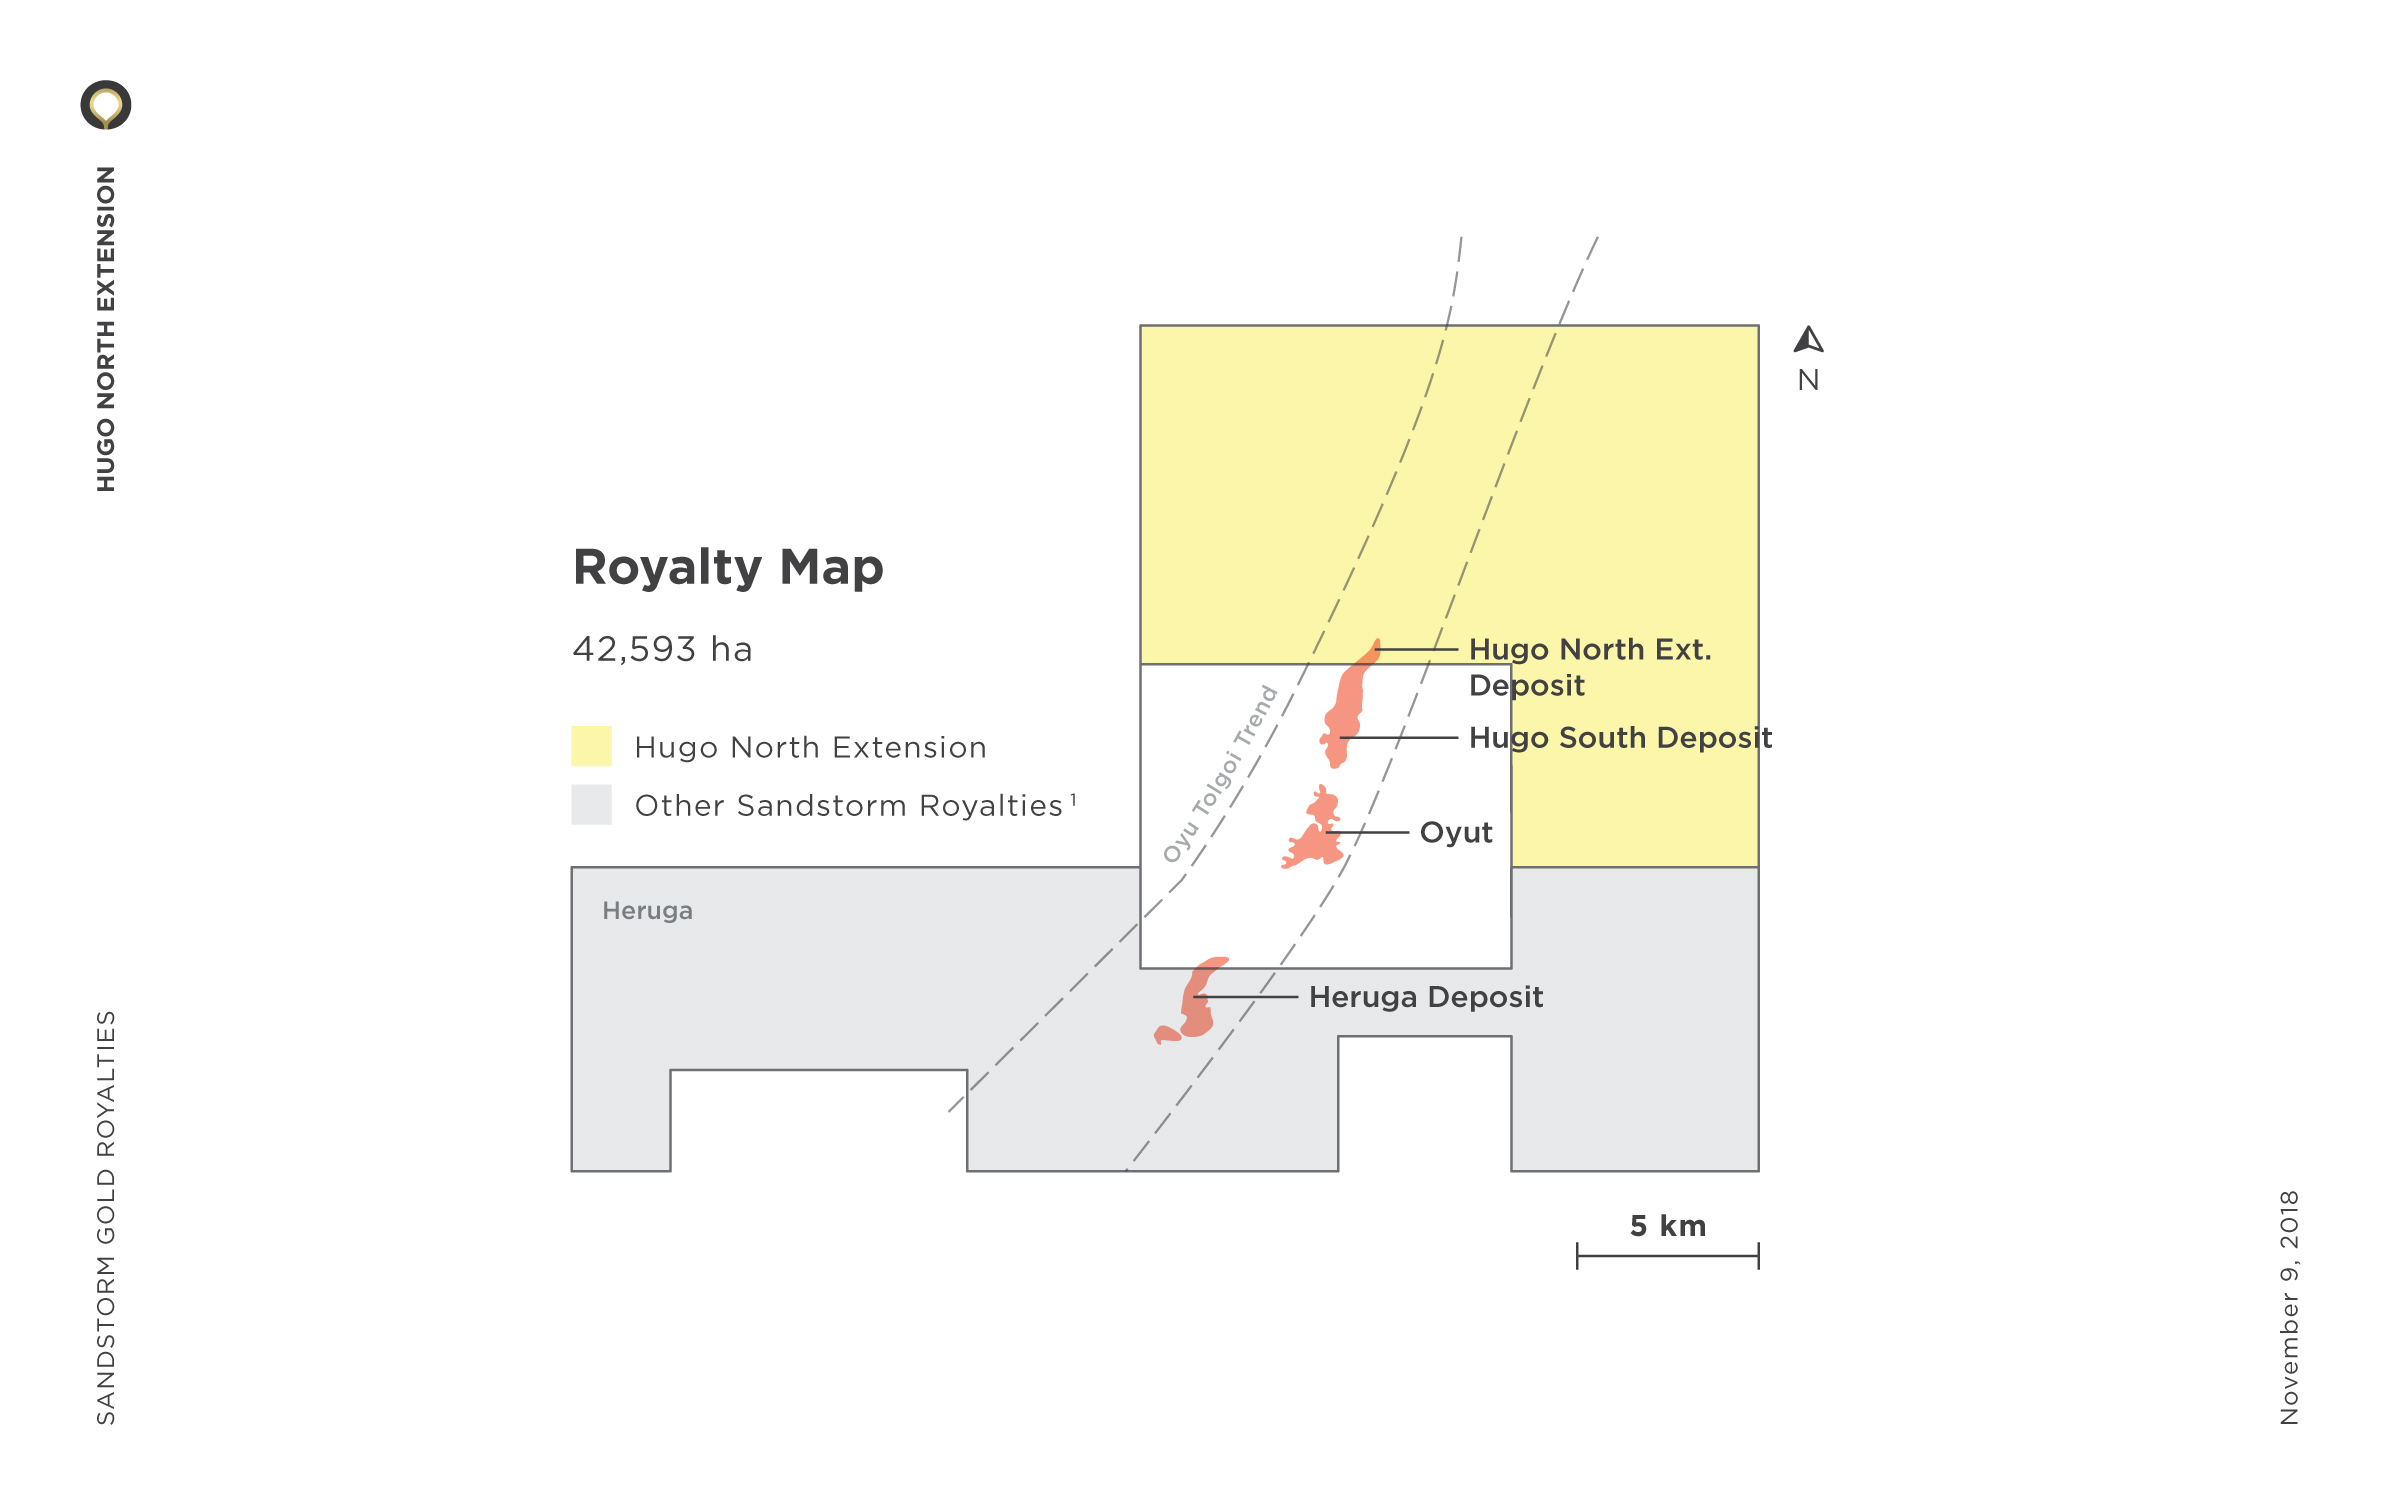 Hugo North Extension Royalty Map